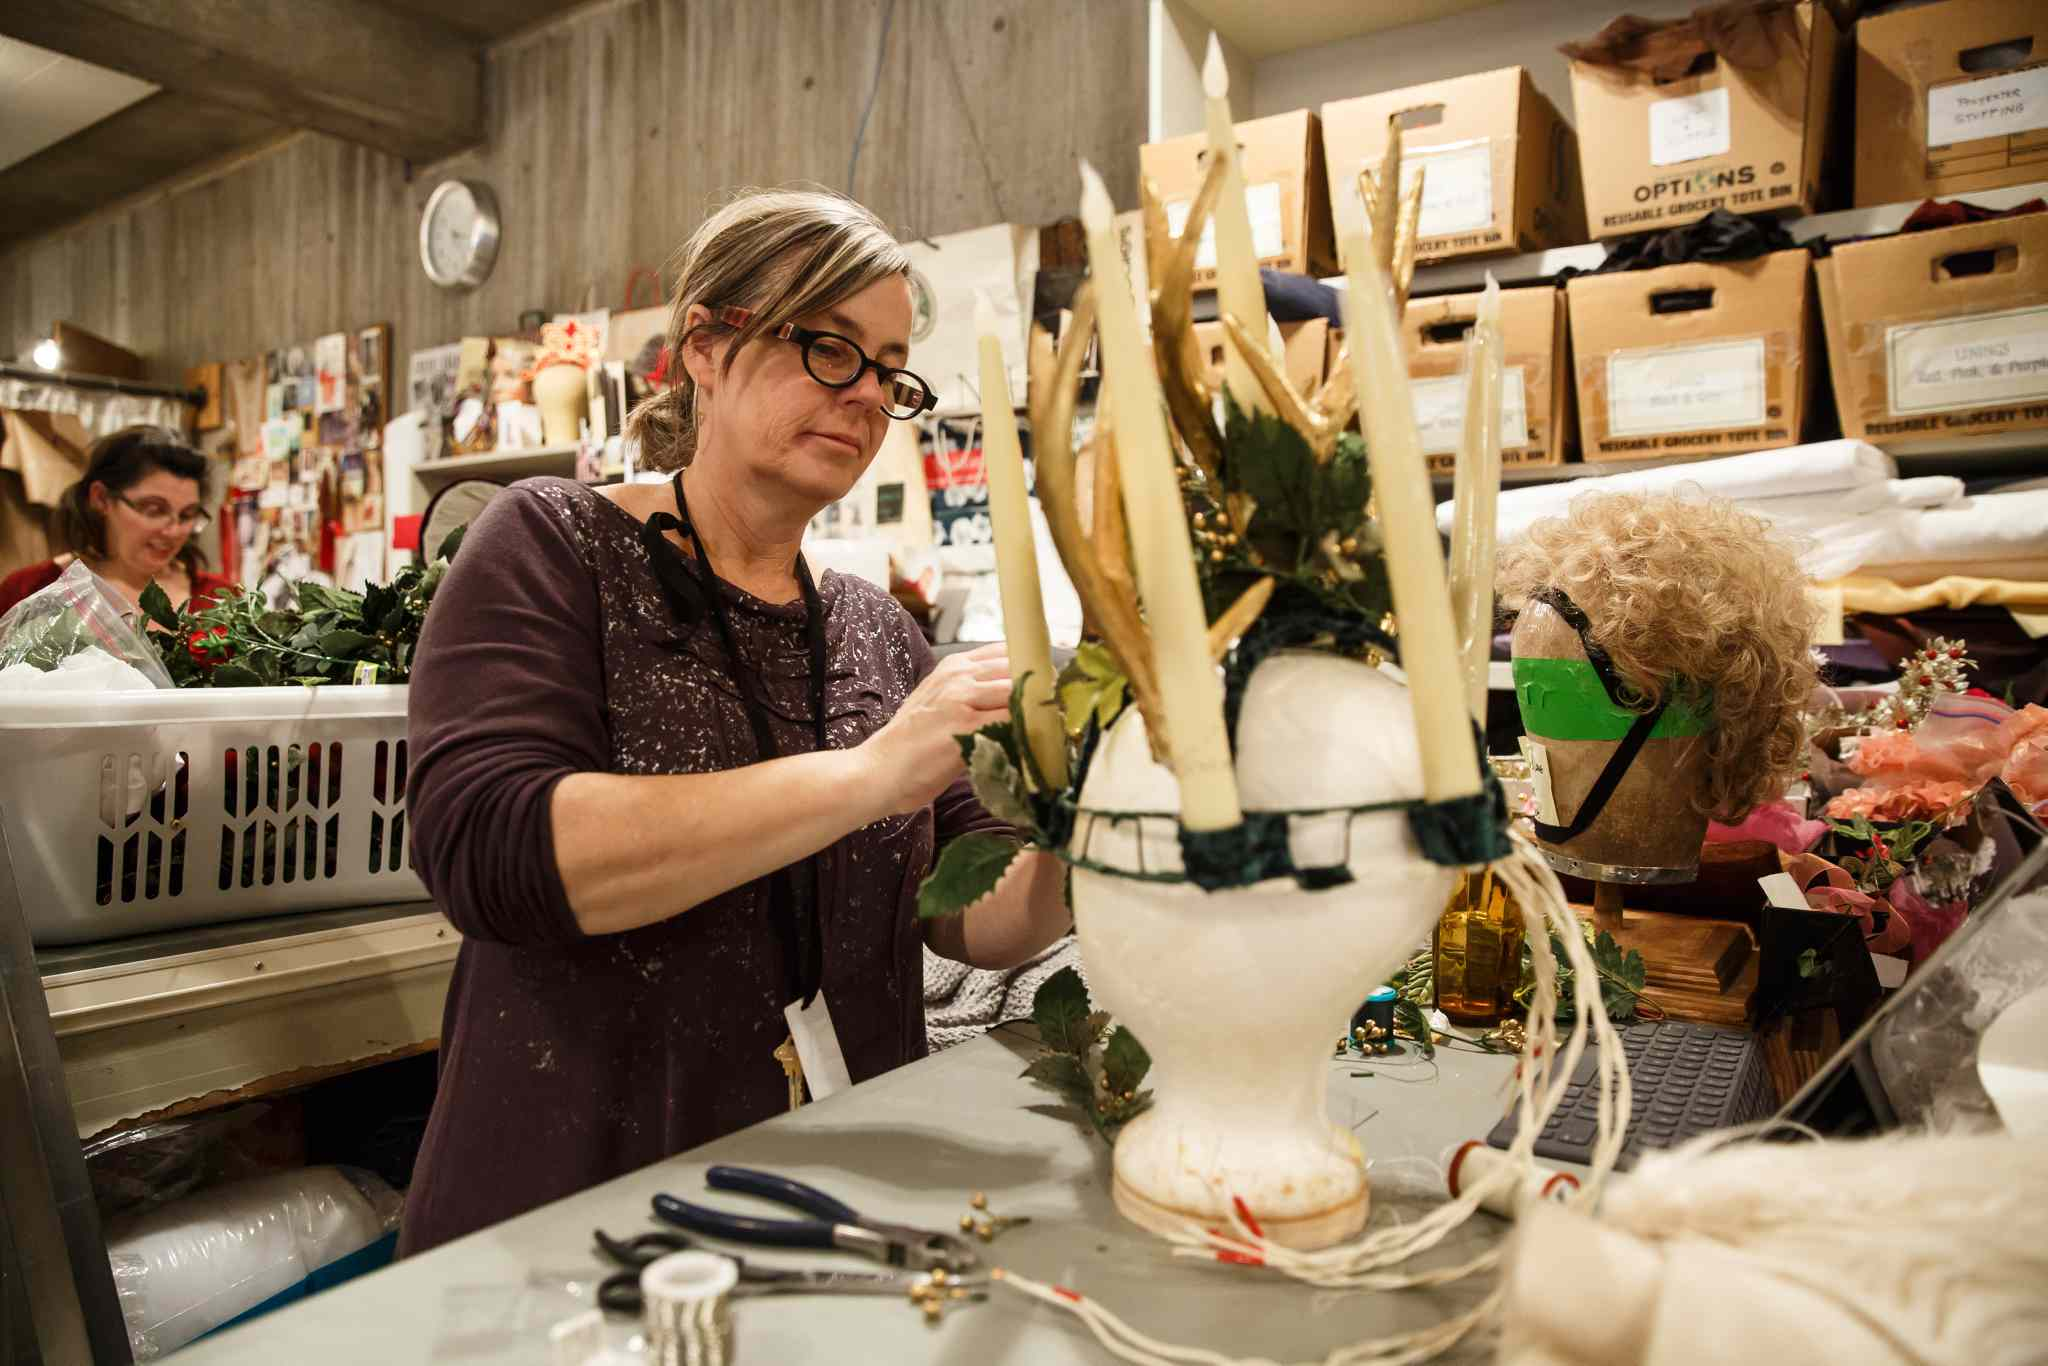 Costume designer Judith Bowden builds the head piece for Ghost of Christmas Present. (Mike Deal / Winnipeg Free Press)